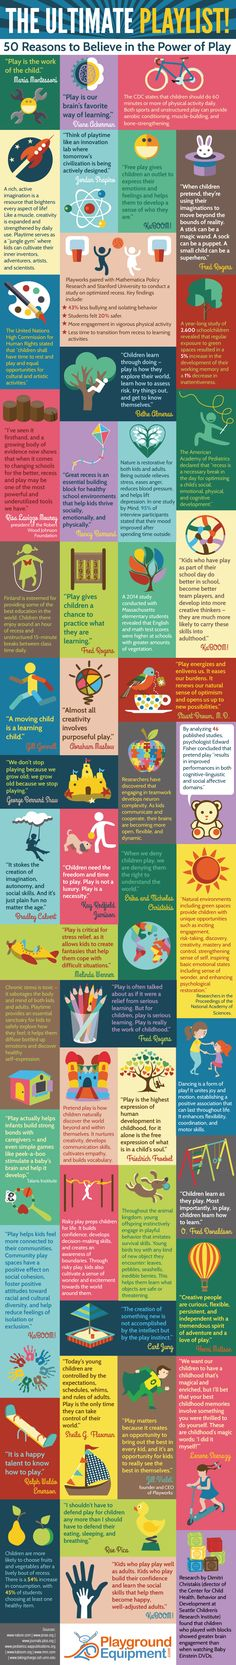 The Ultimate Playlist: 50 Reasons to Believe in the Power of Play - PlaygroundEquipment.org - Infographic